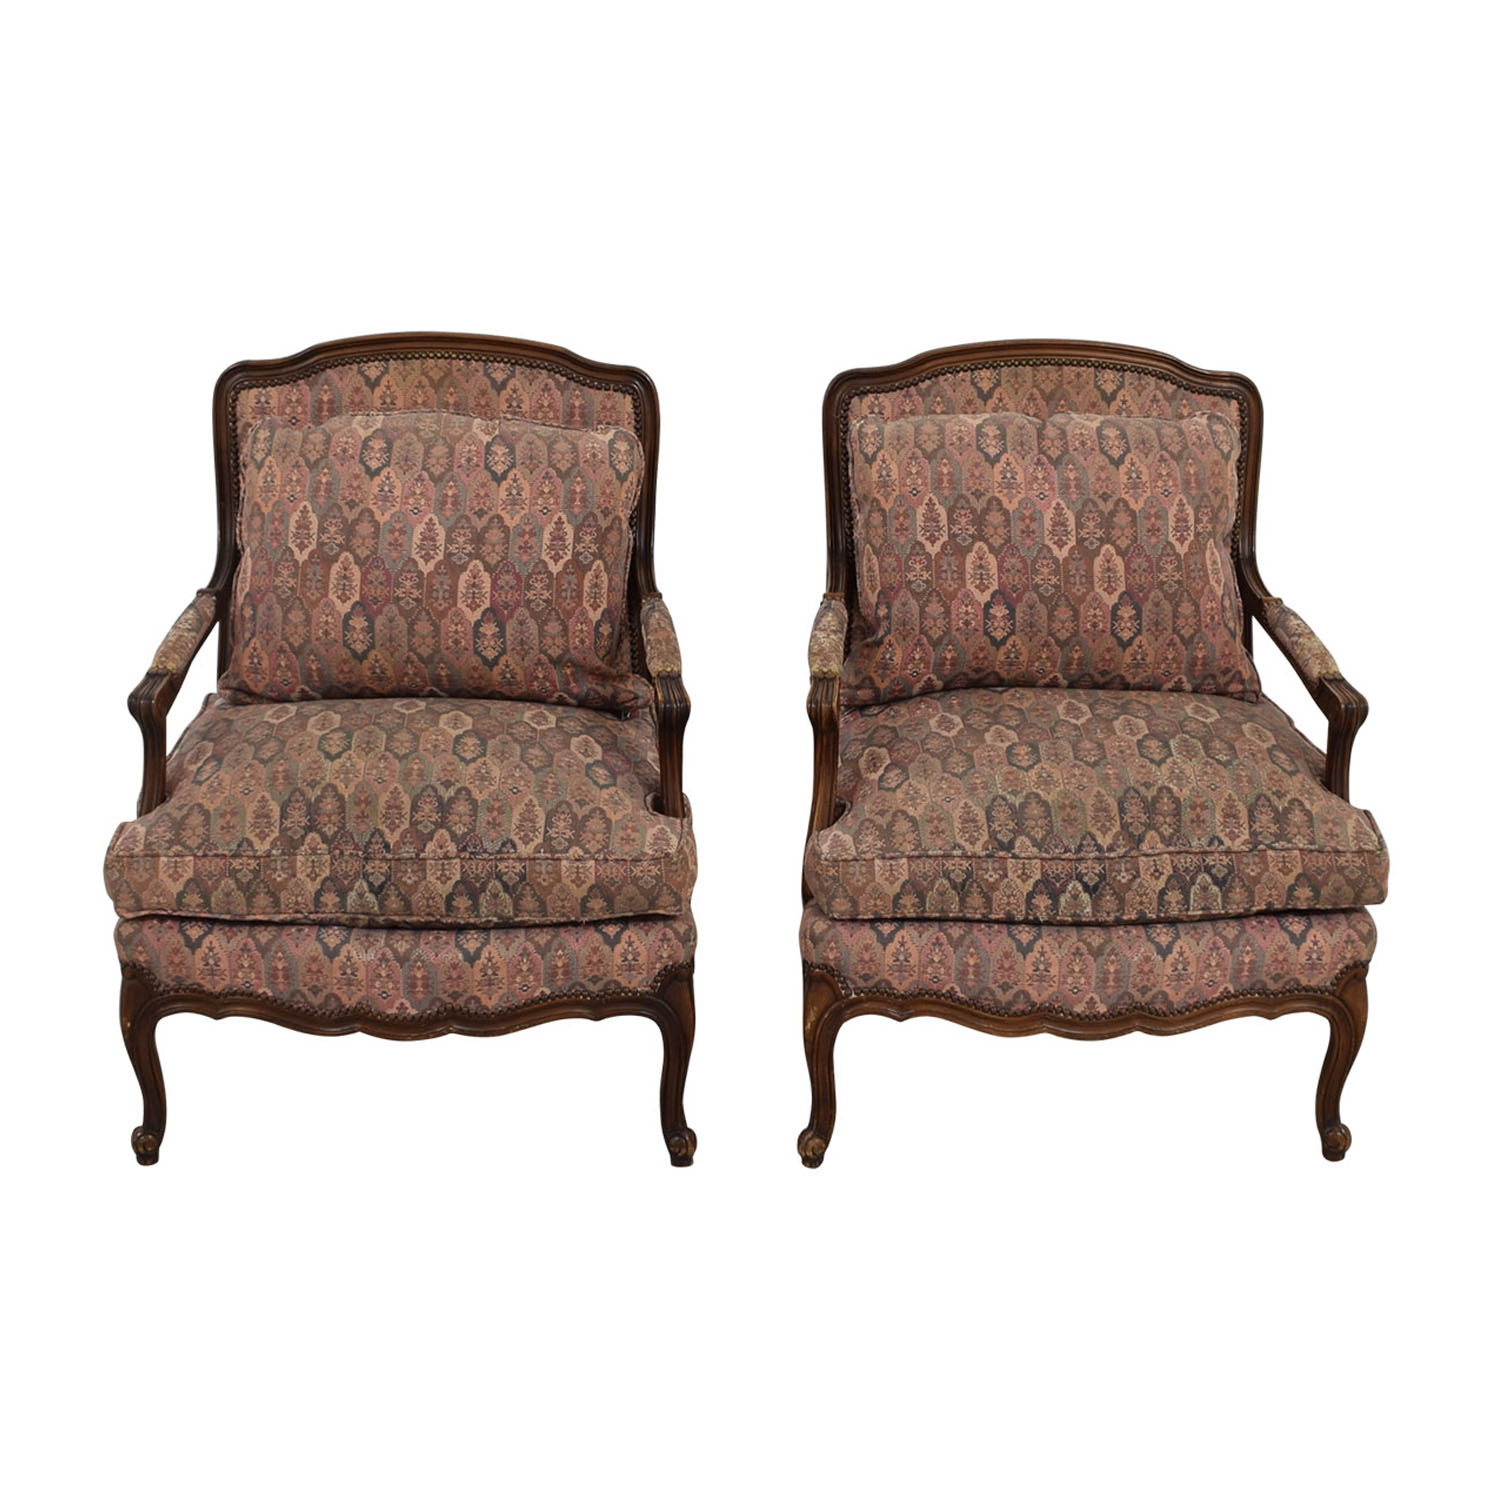 Used Wingback Chairs 87 Off Crate And Barrel Crate And Barrel Tux Armchair